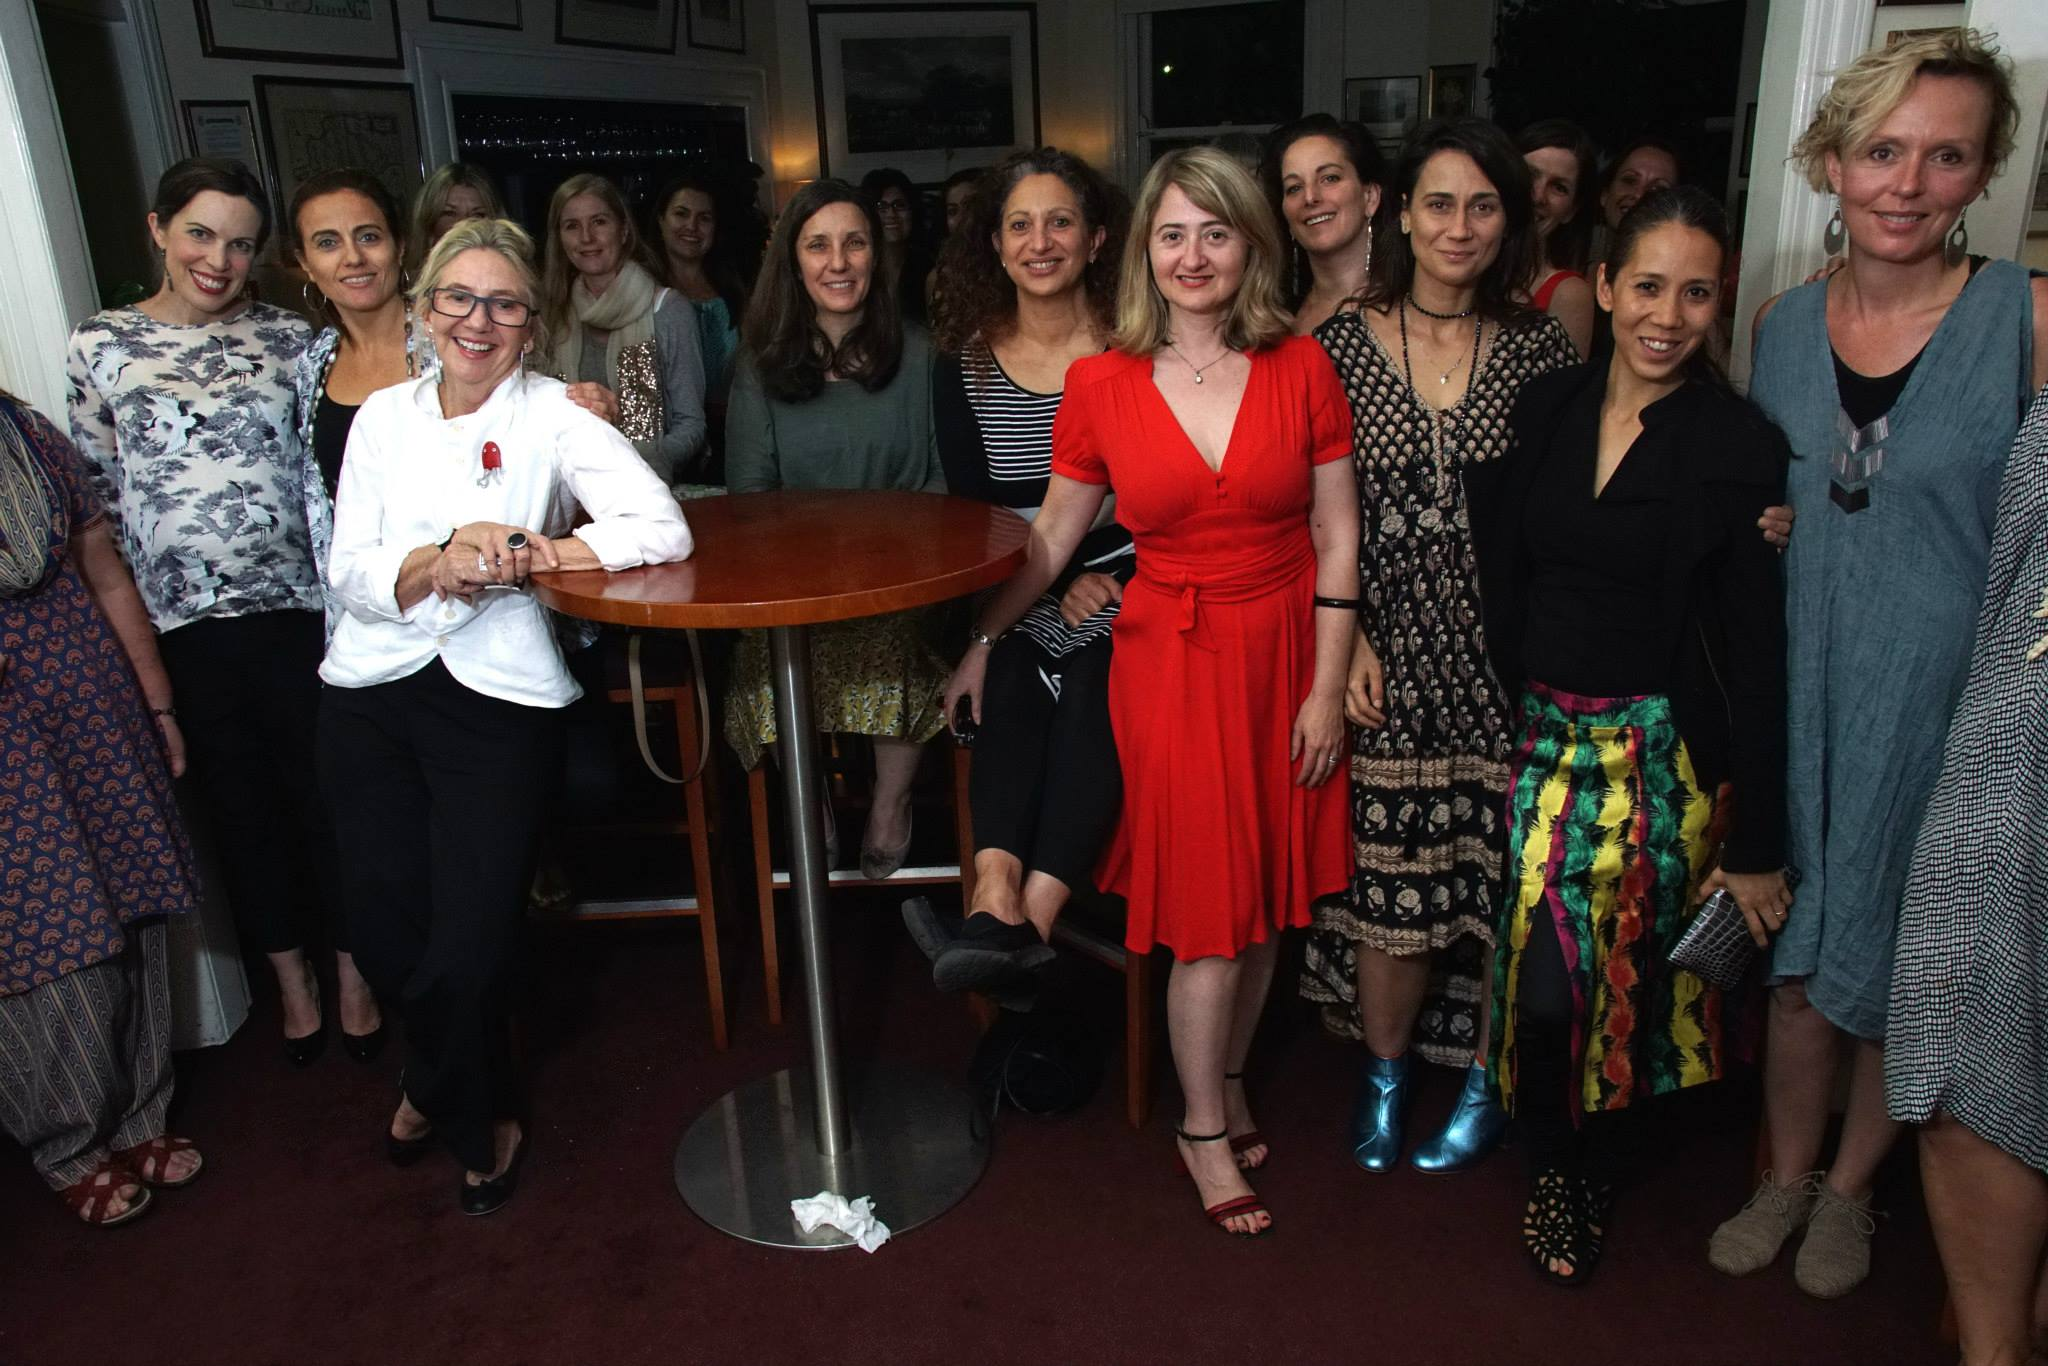 A room full of high calibre and talented creative mamas came out to hear the remarkable Siobhan Costigan, designer, award winning documentary filmmaker and co-founder of People Like Us